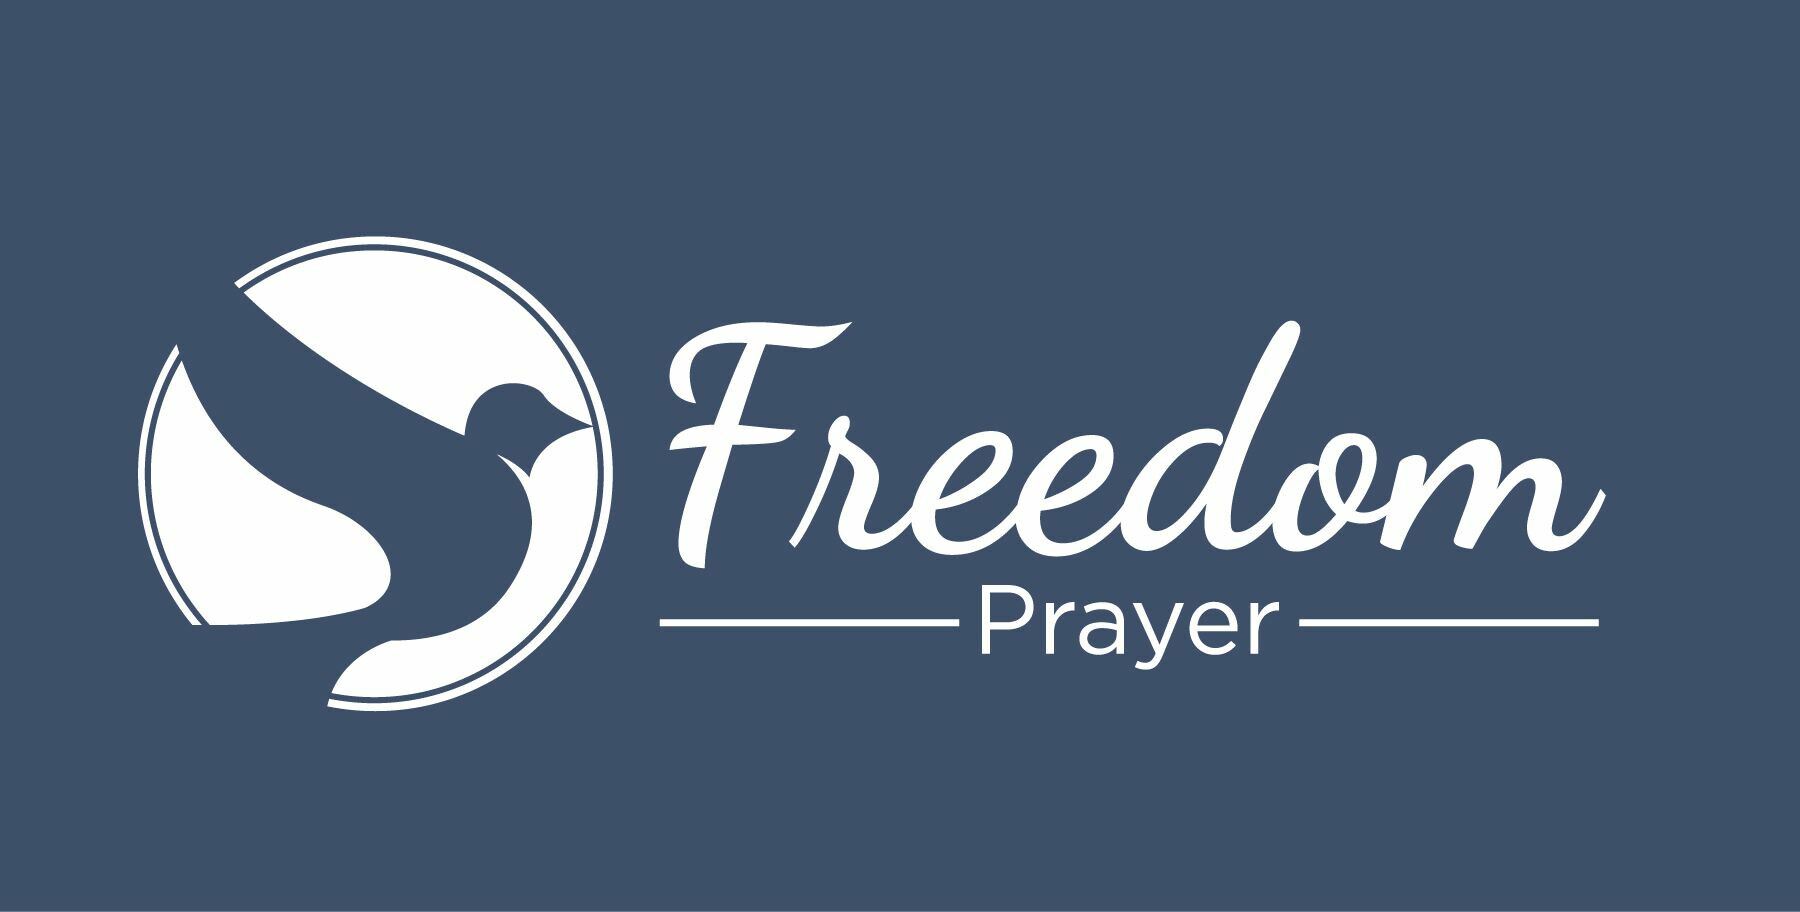 Freedom Prayer